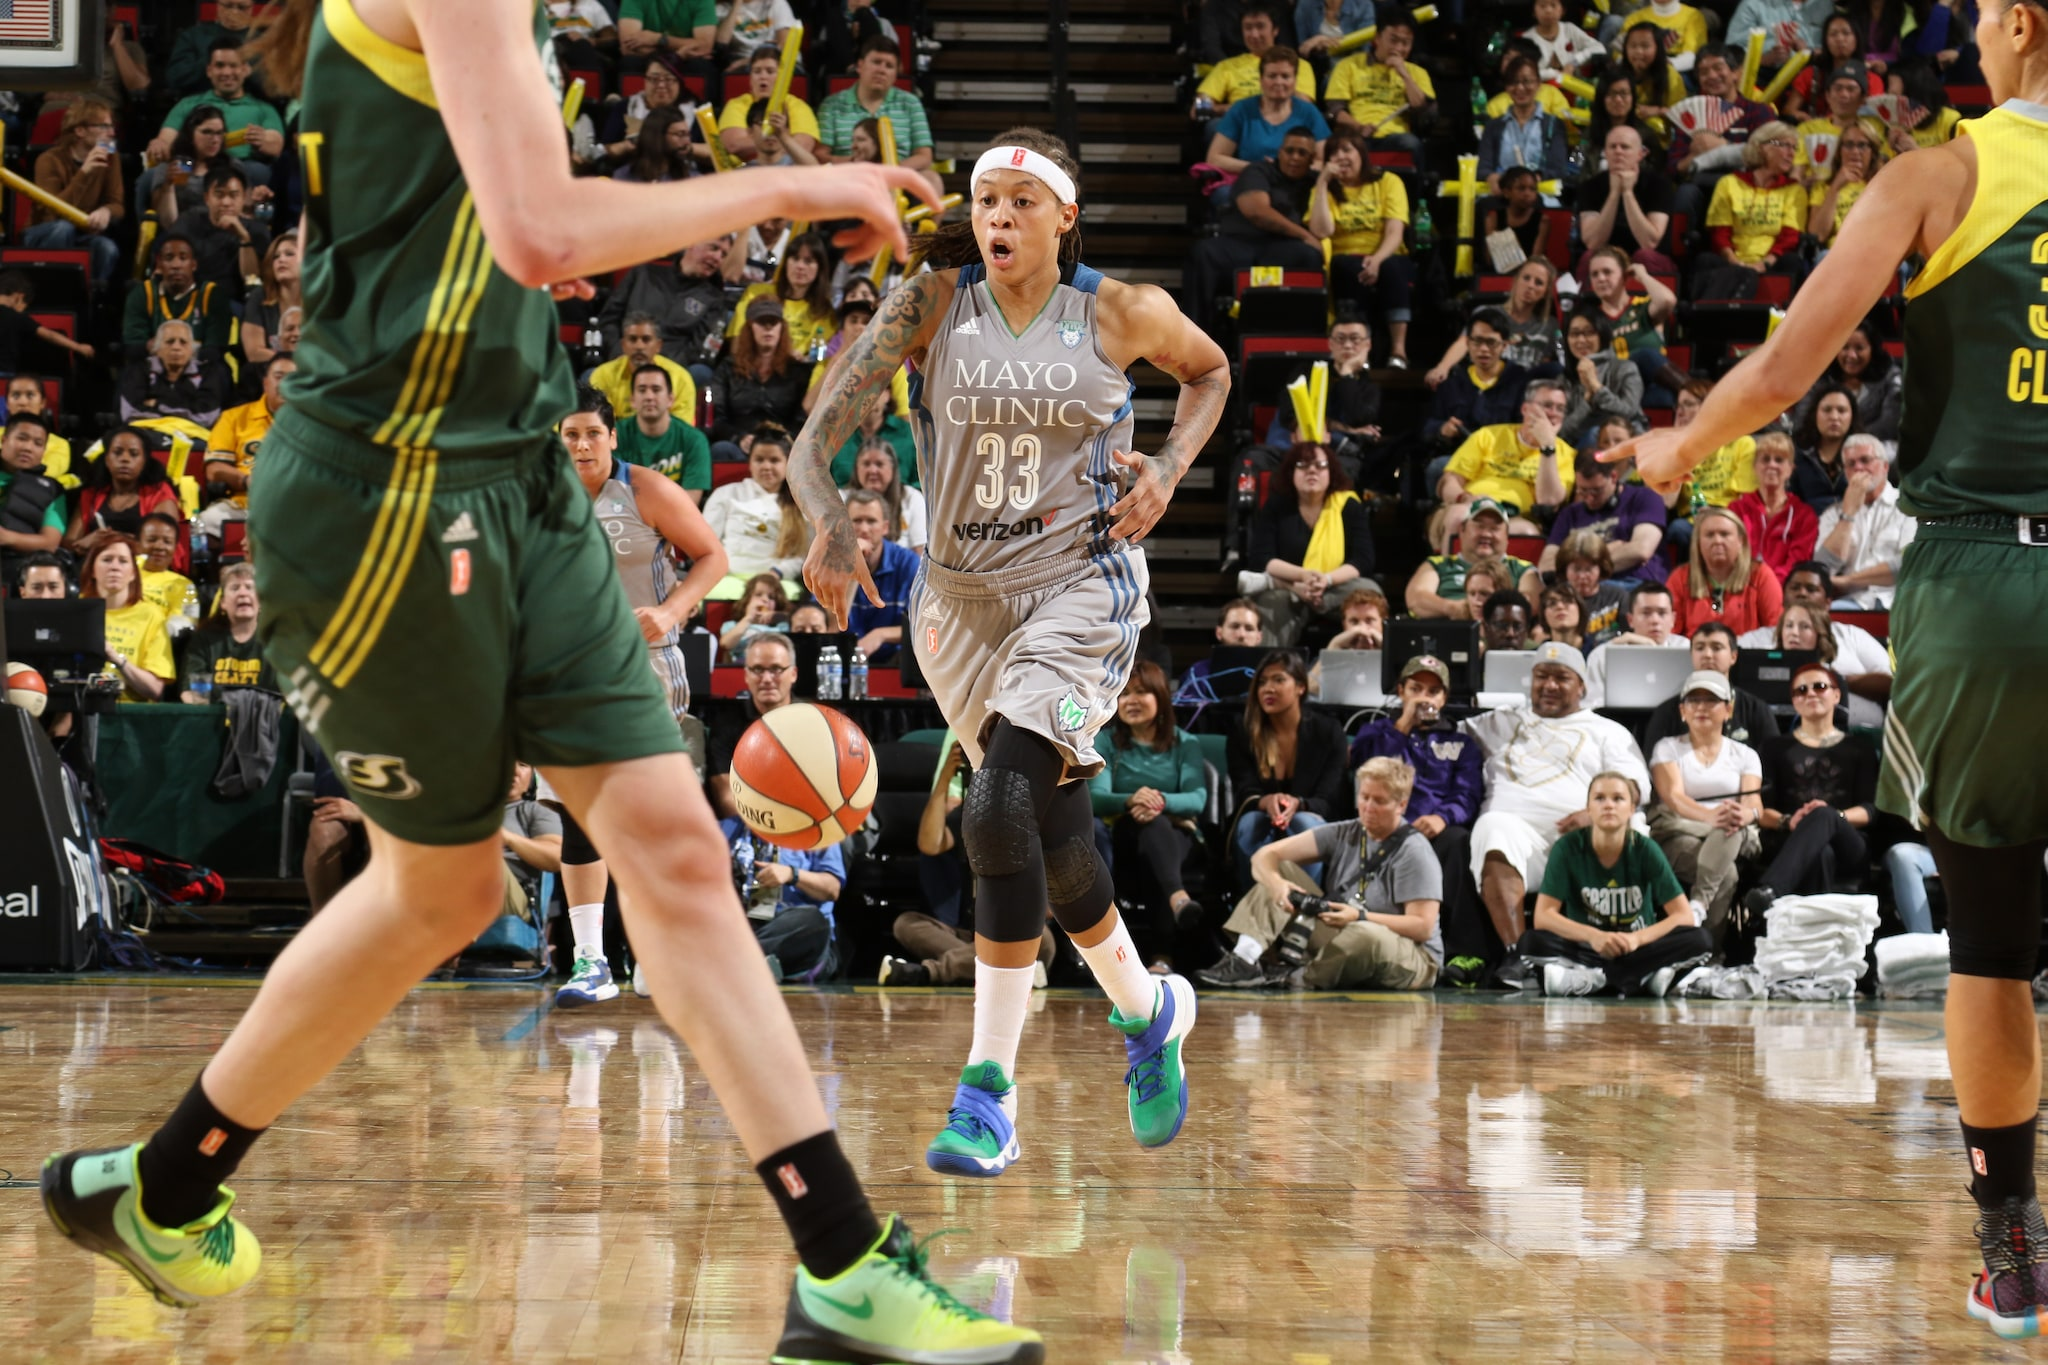 SEATTLE, WA - MAY 22: Seimone Augustus #33 of the Minnesota Lynx handles the ball against the Seattle Storm  on May 22, 2016 at KeyArena in Seattle, Washington. NOTE TO USER: User expressly acknowledges and agrees that, by downloading and or using this photograph, user is consenting to the terms and conditions of Getty Images License Agreement. Mandatory Copyright Notice: Copyright 2016 NBAE (Photo by Josh Huston/NBAE via Getty Images)